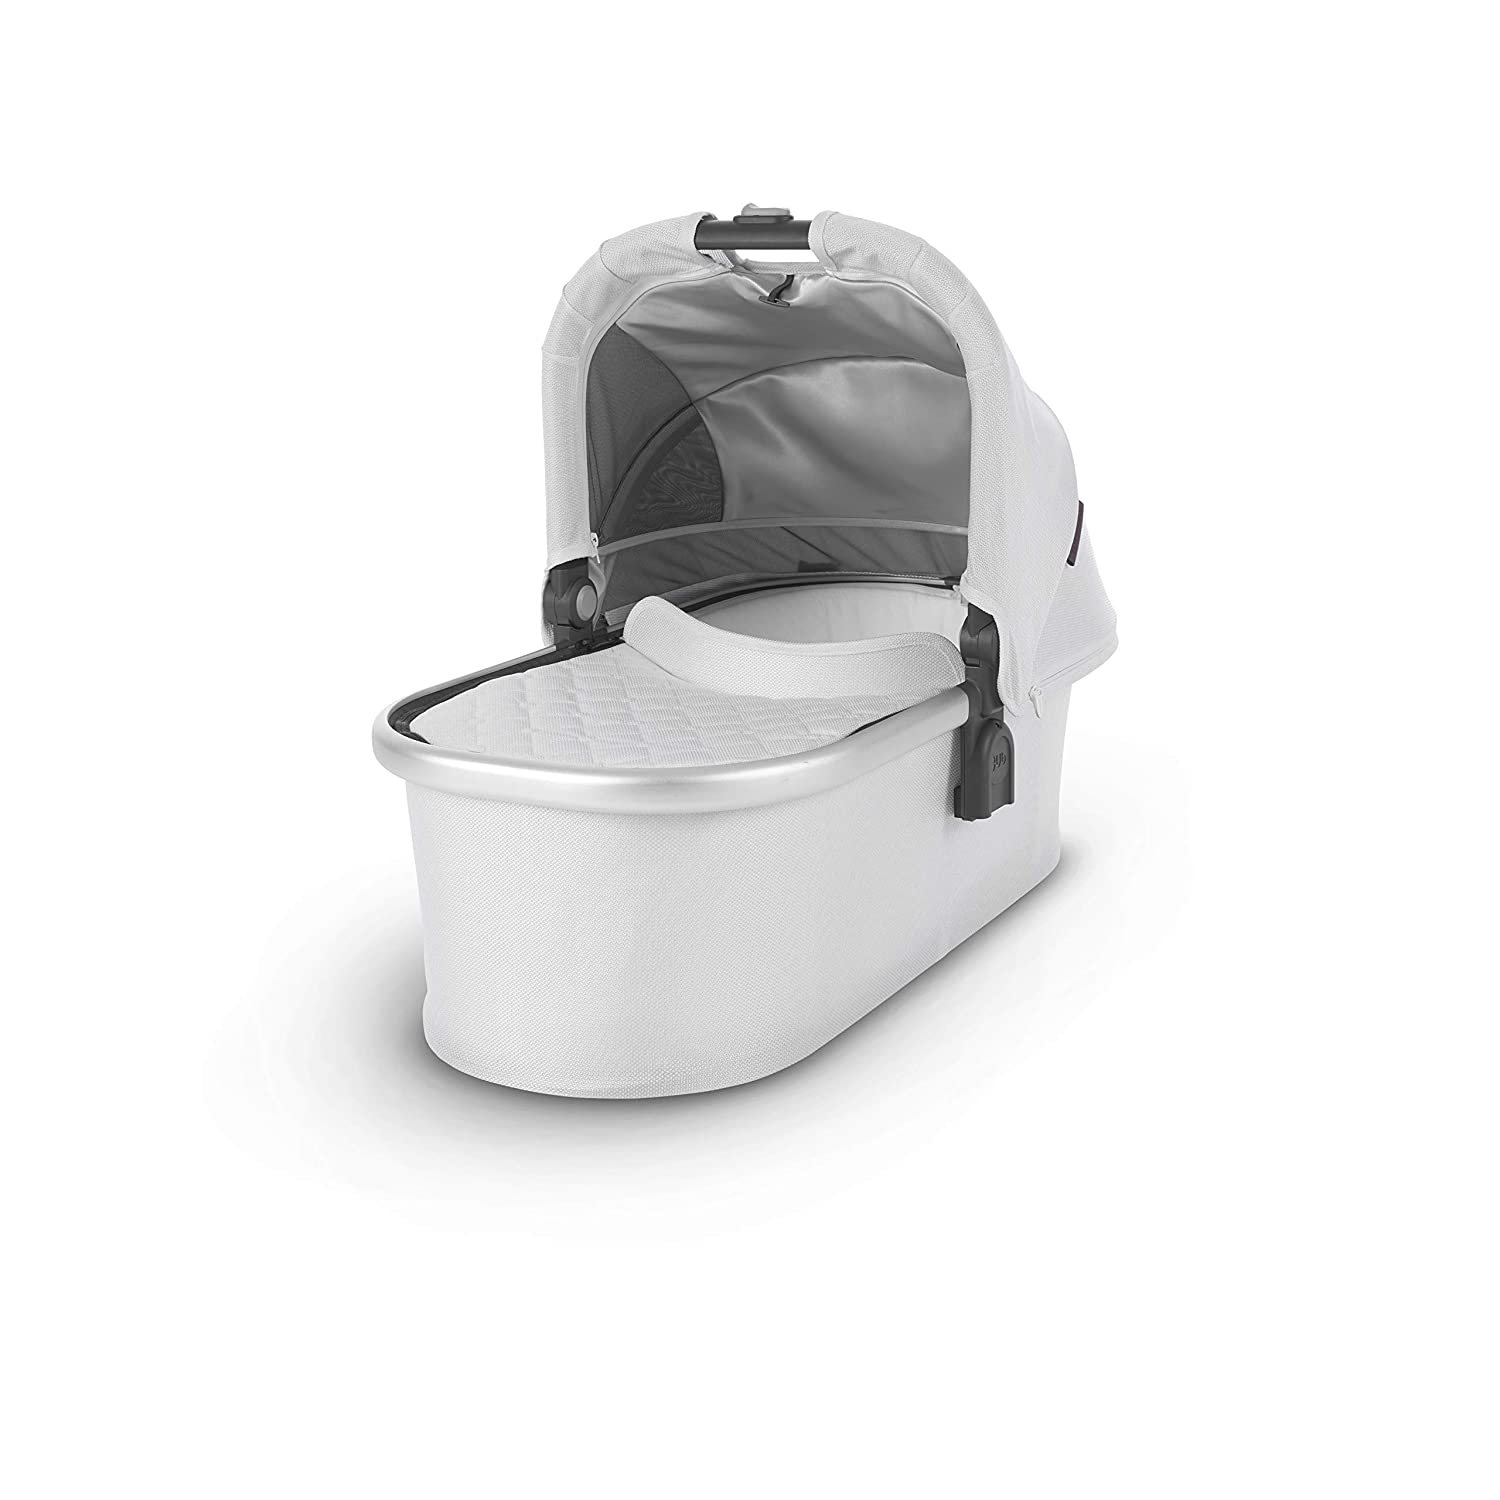 UPPAbaby Bassinet, Bryce White Marl Silver, Standard